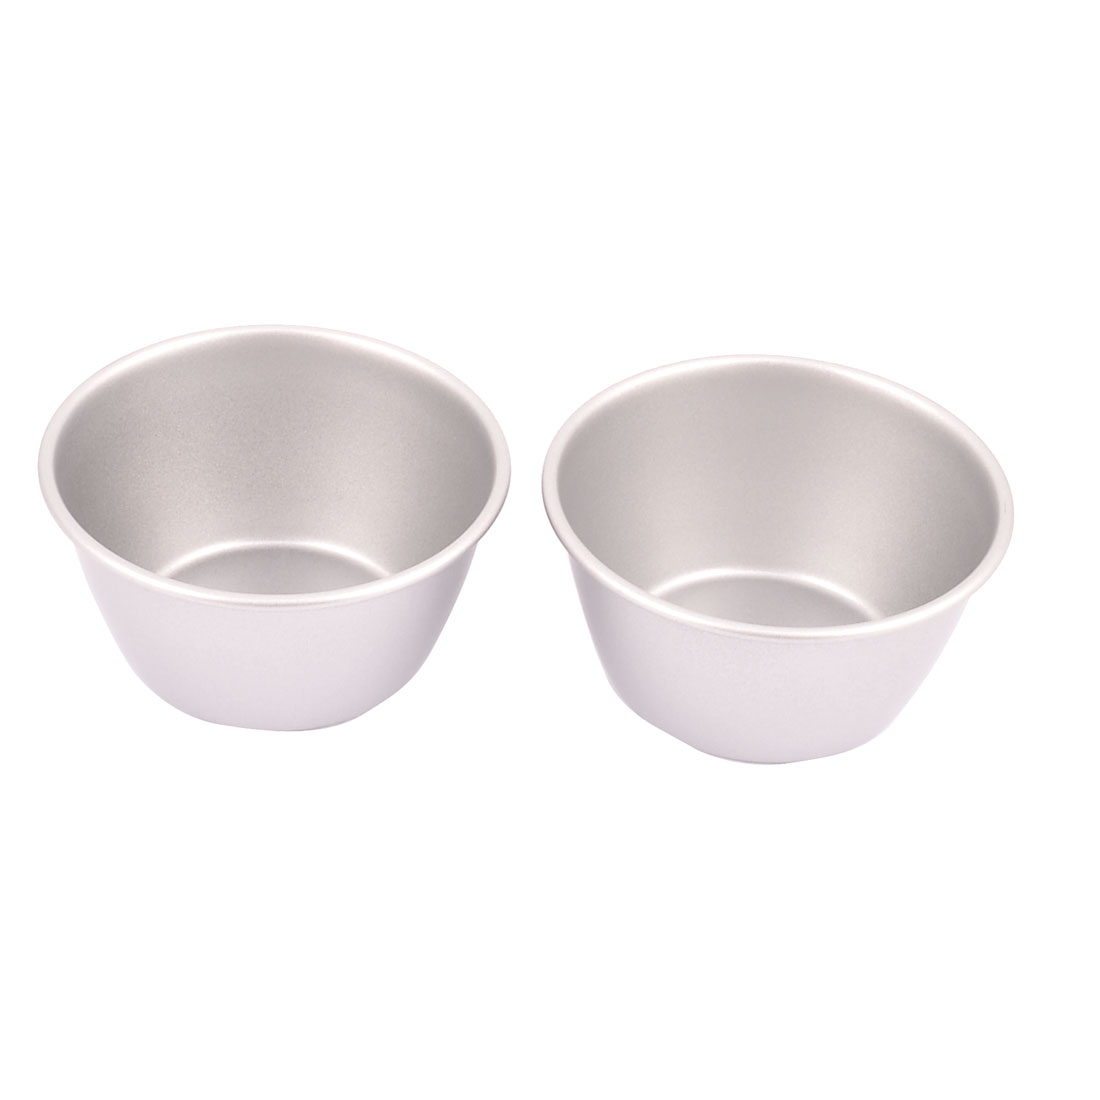 Cake Chocolate Pudding Nonstick Baking Cups Mold 2pcs